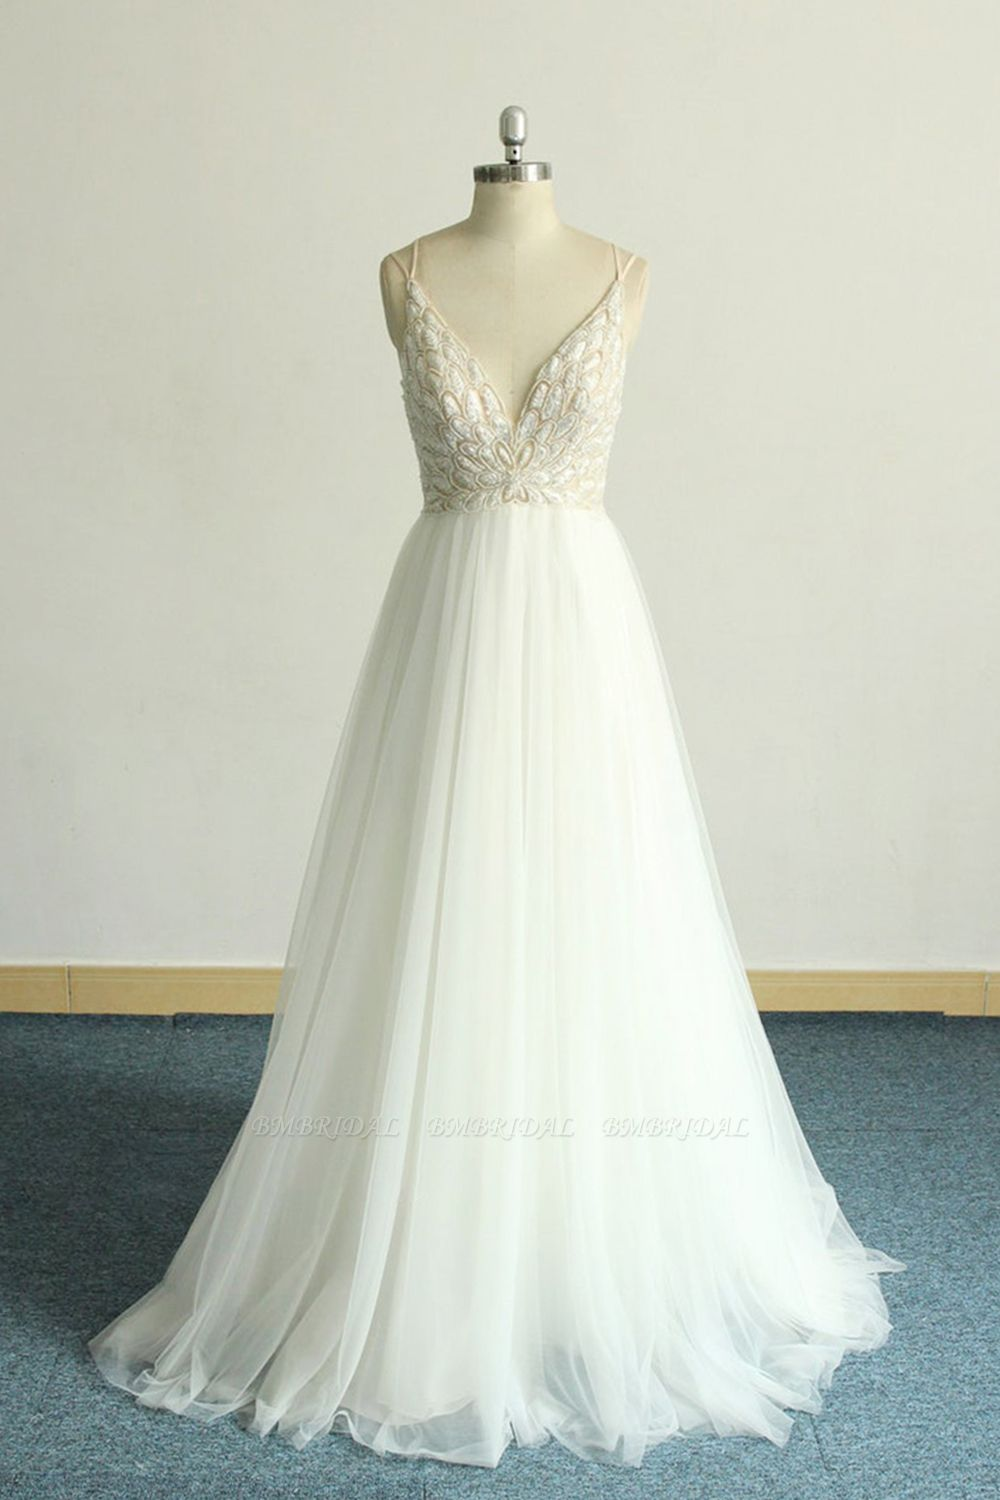 BMbridal Gorgeous A-line White Lace Tulle Wedding Dress Sleeveless Appliques Bridal Gowns On Sale